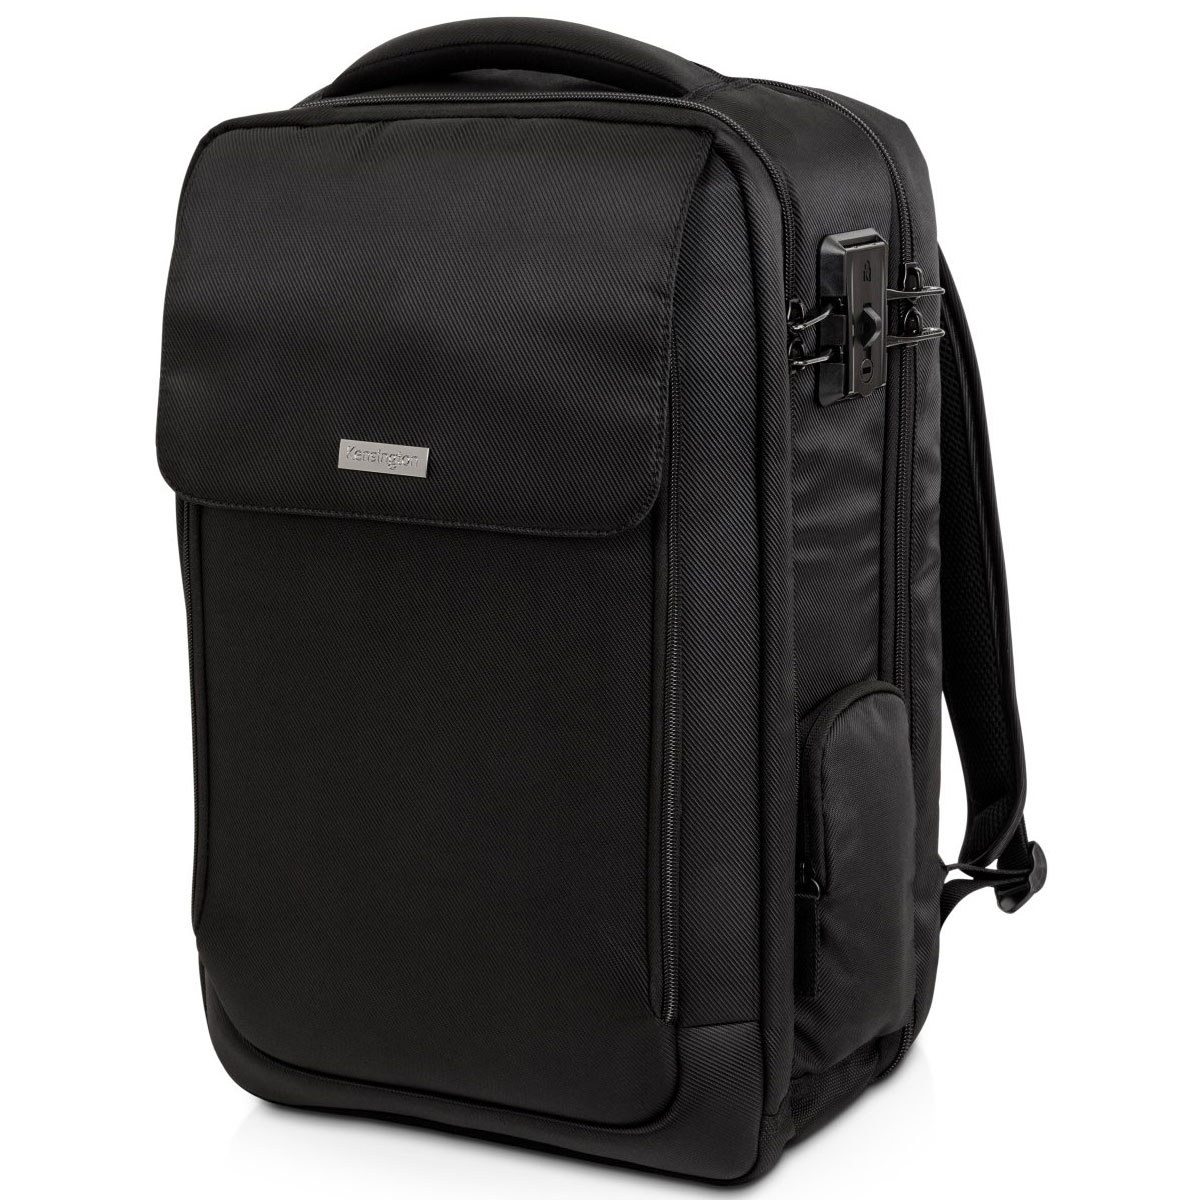 kensington securetrek backpack 17 sac sacoche housse kensington sur ldlc. Black Bedroom Furniture Sets. Home Design Ideas